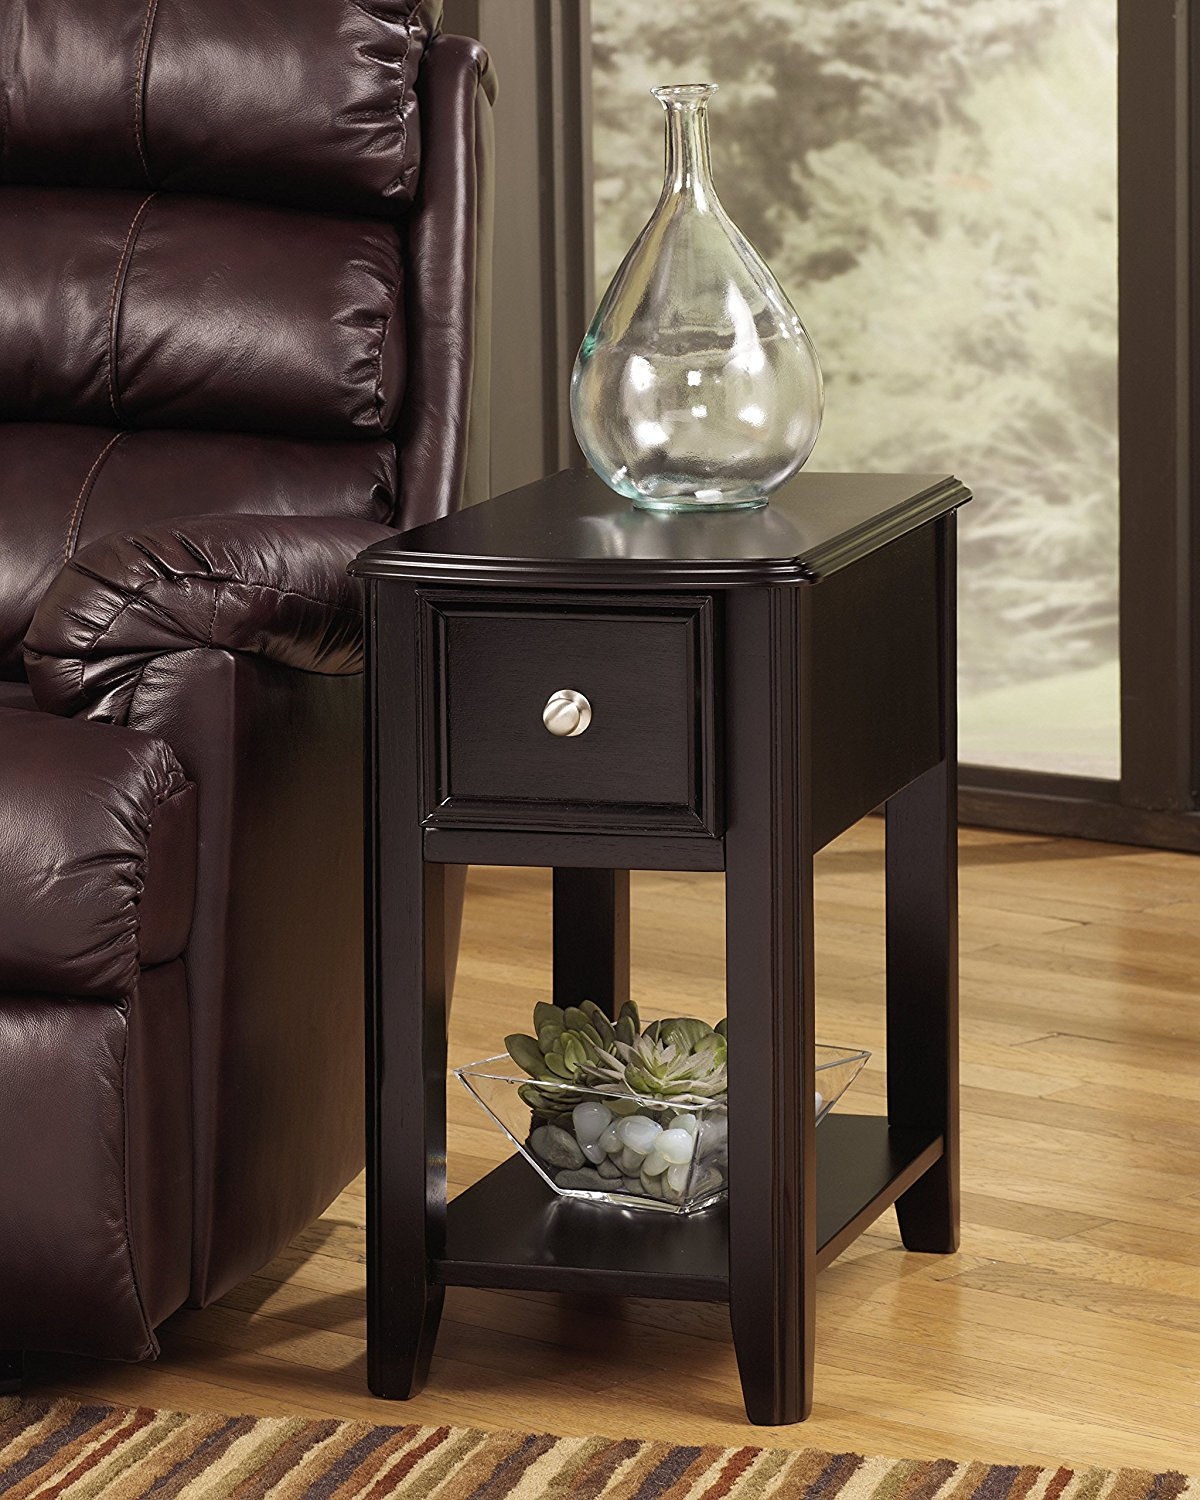 terrific small side table options for your living room ashley signature design breegin chair end tables spaces furniture rectangular with nickel tone hardware and ana white dining